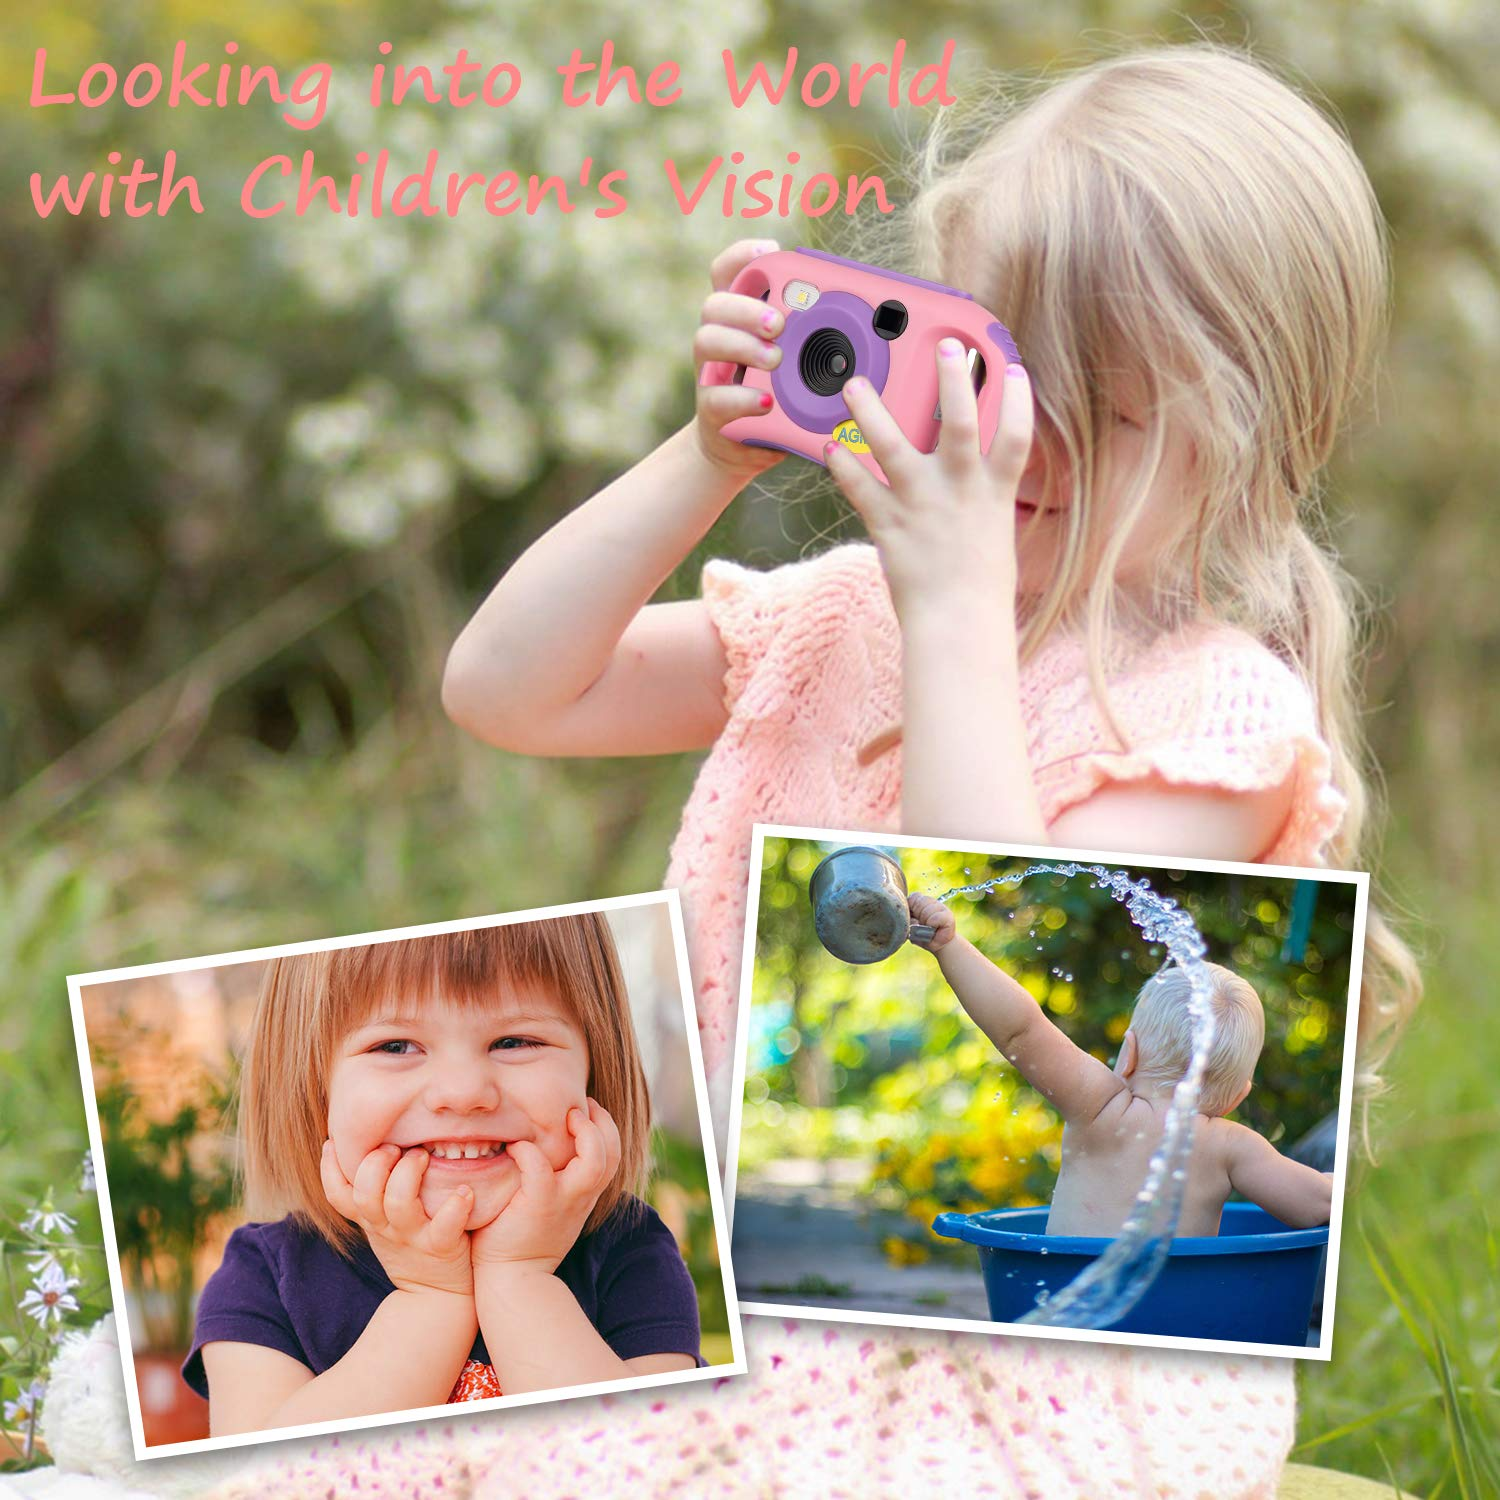 AGM Kids Camera for Girls & Boys, 1.77Inch Children Video Recorder Toddler Digital Camera,Creative Birthday Children's Day Gifts (Pink) by AGM (Image #4)